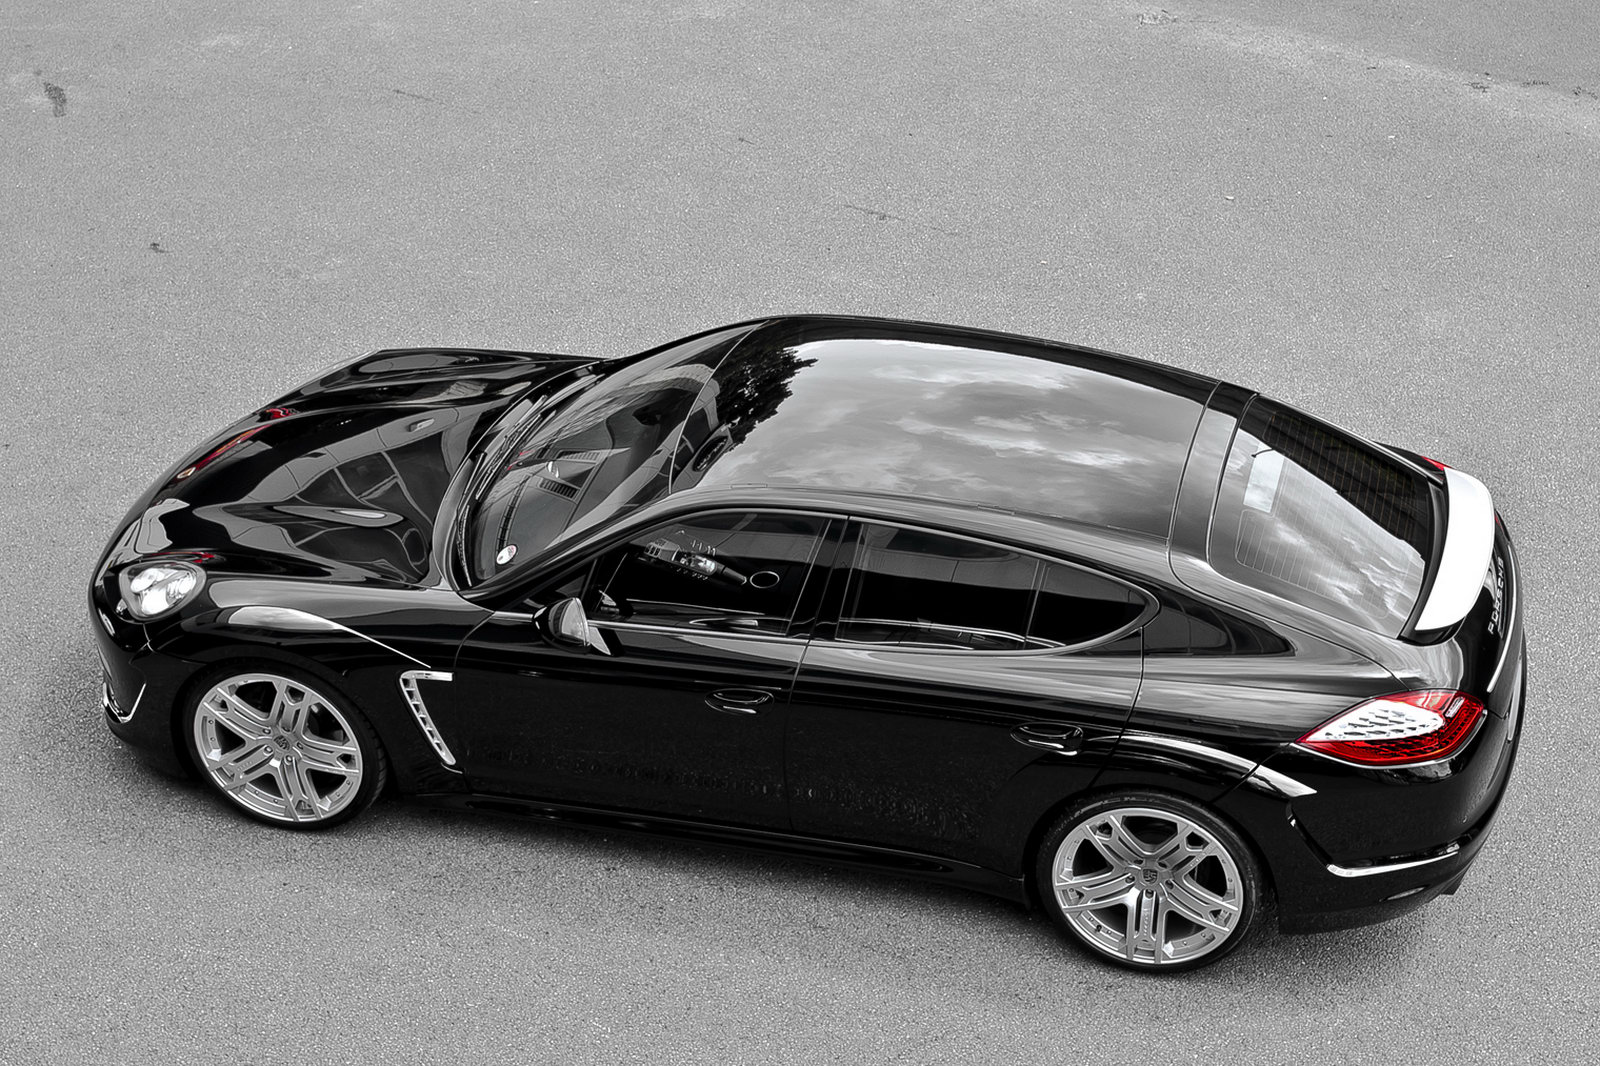 Project Kahn Porsche Panamera 2 Kahn's new car project: The Porsche Panamera Car Saloon